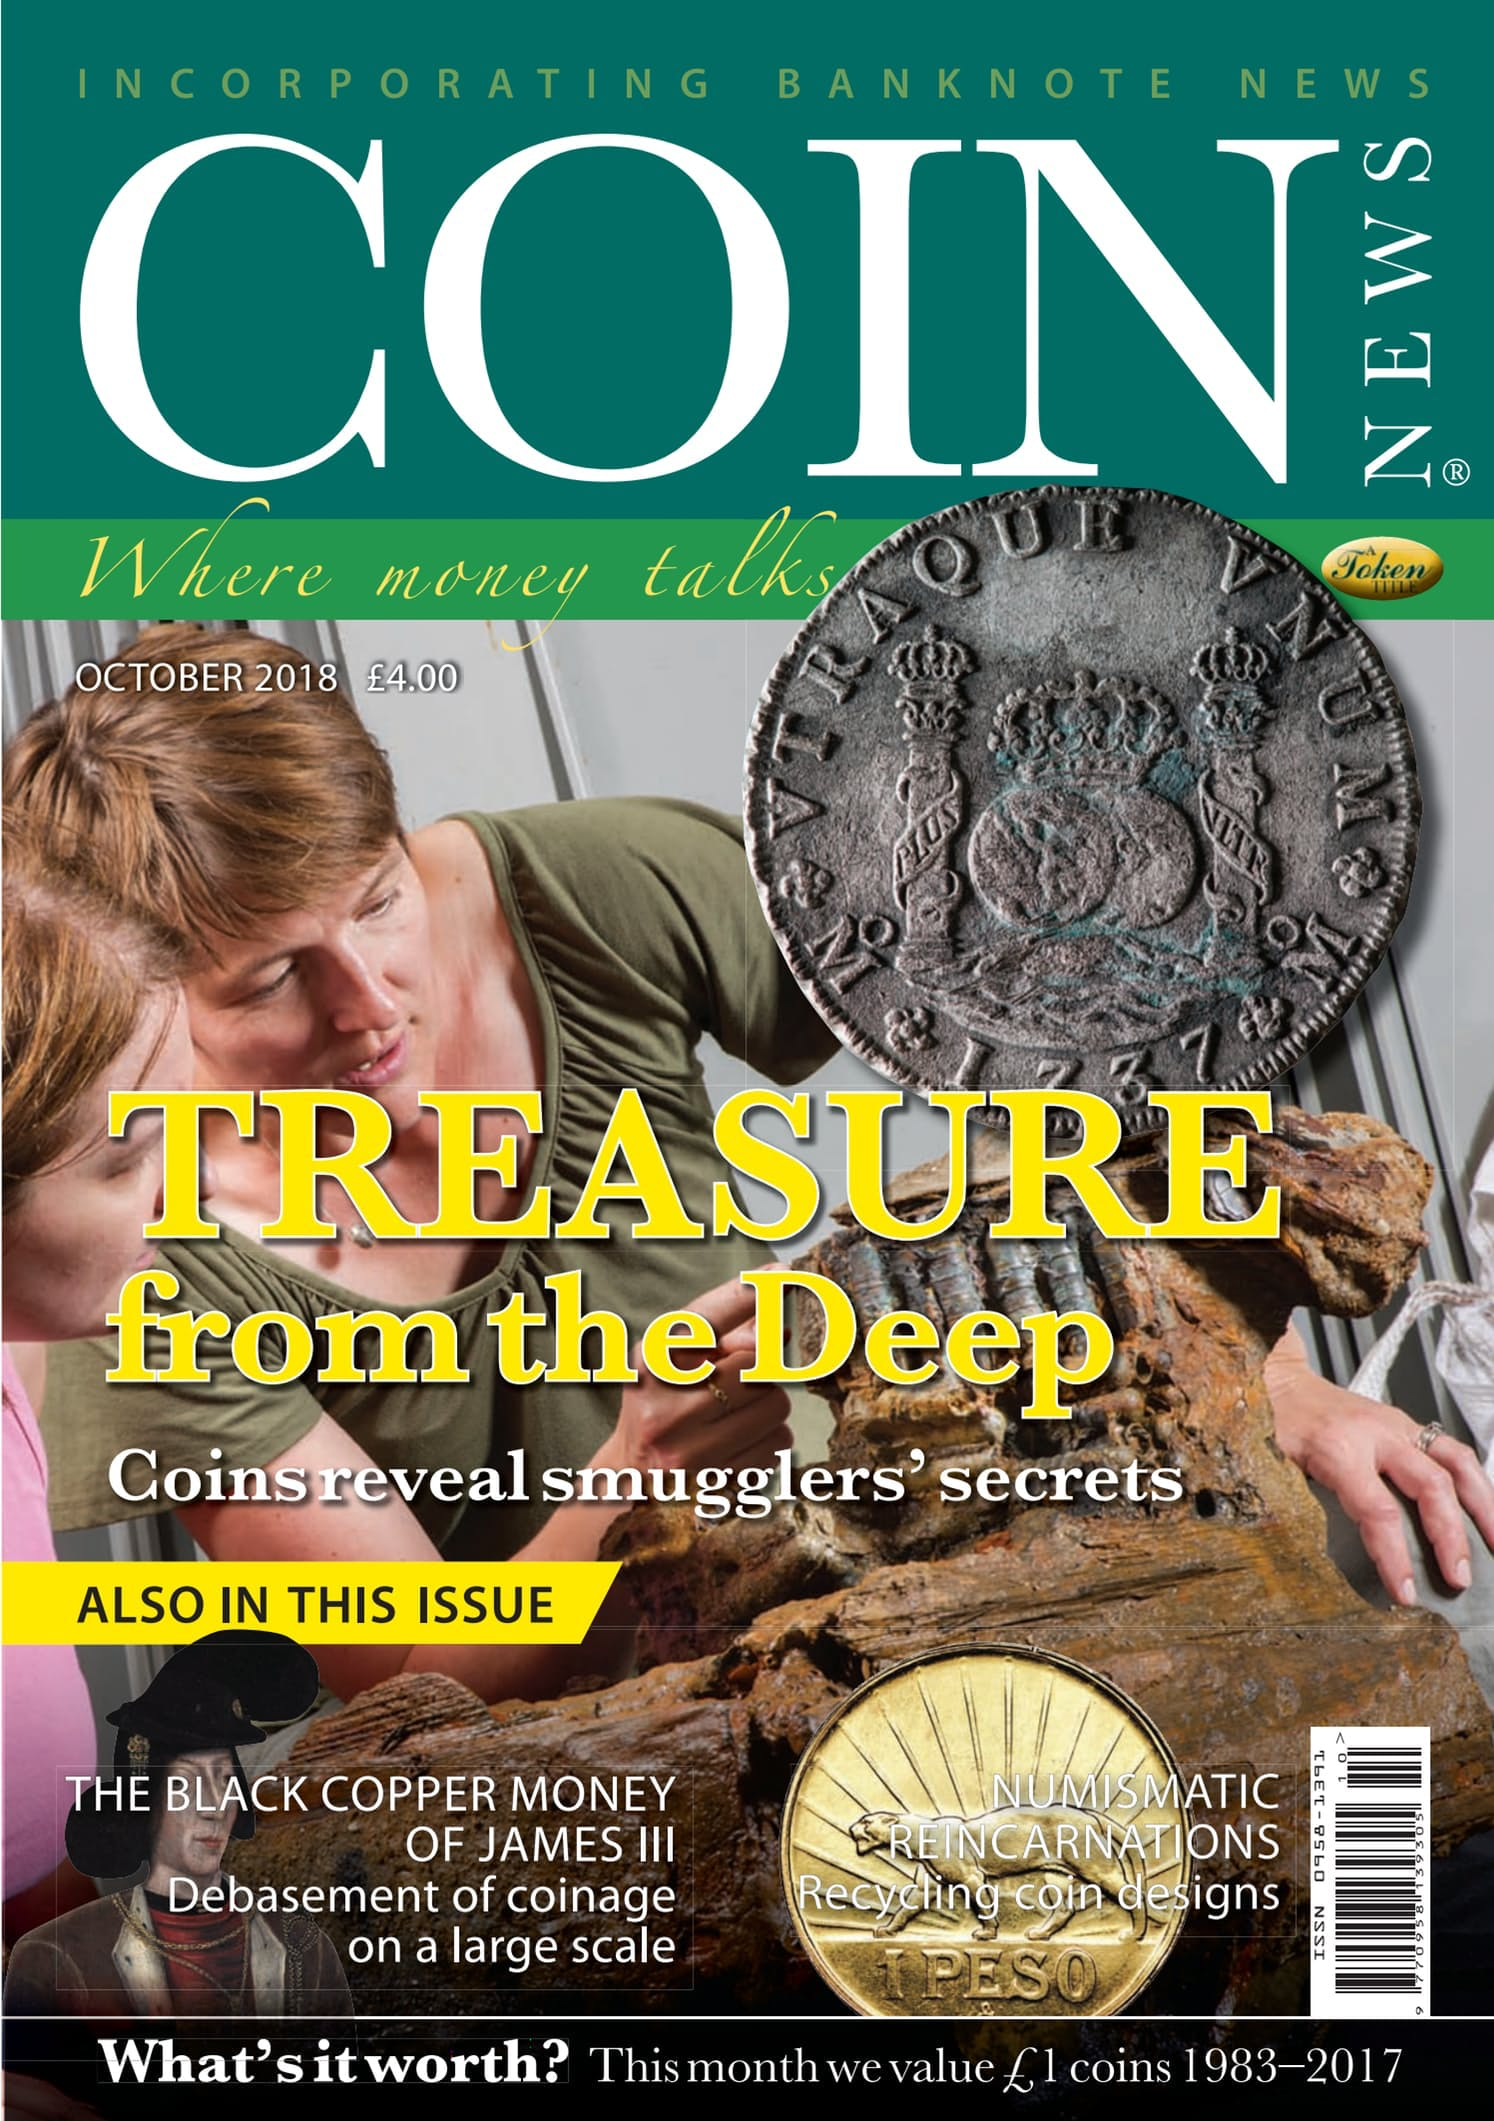 The front cover of Coin News, October 2018 - Volume 55, Number 10